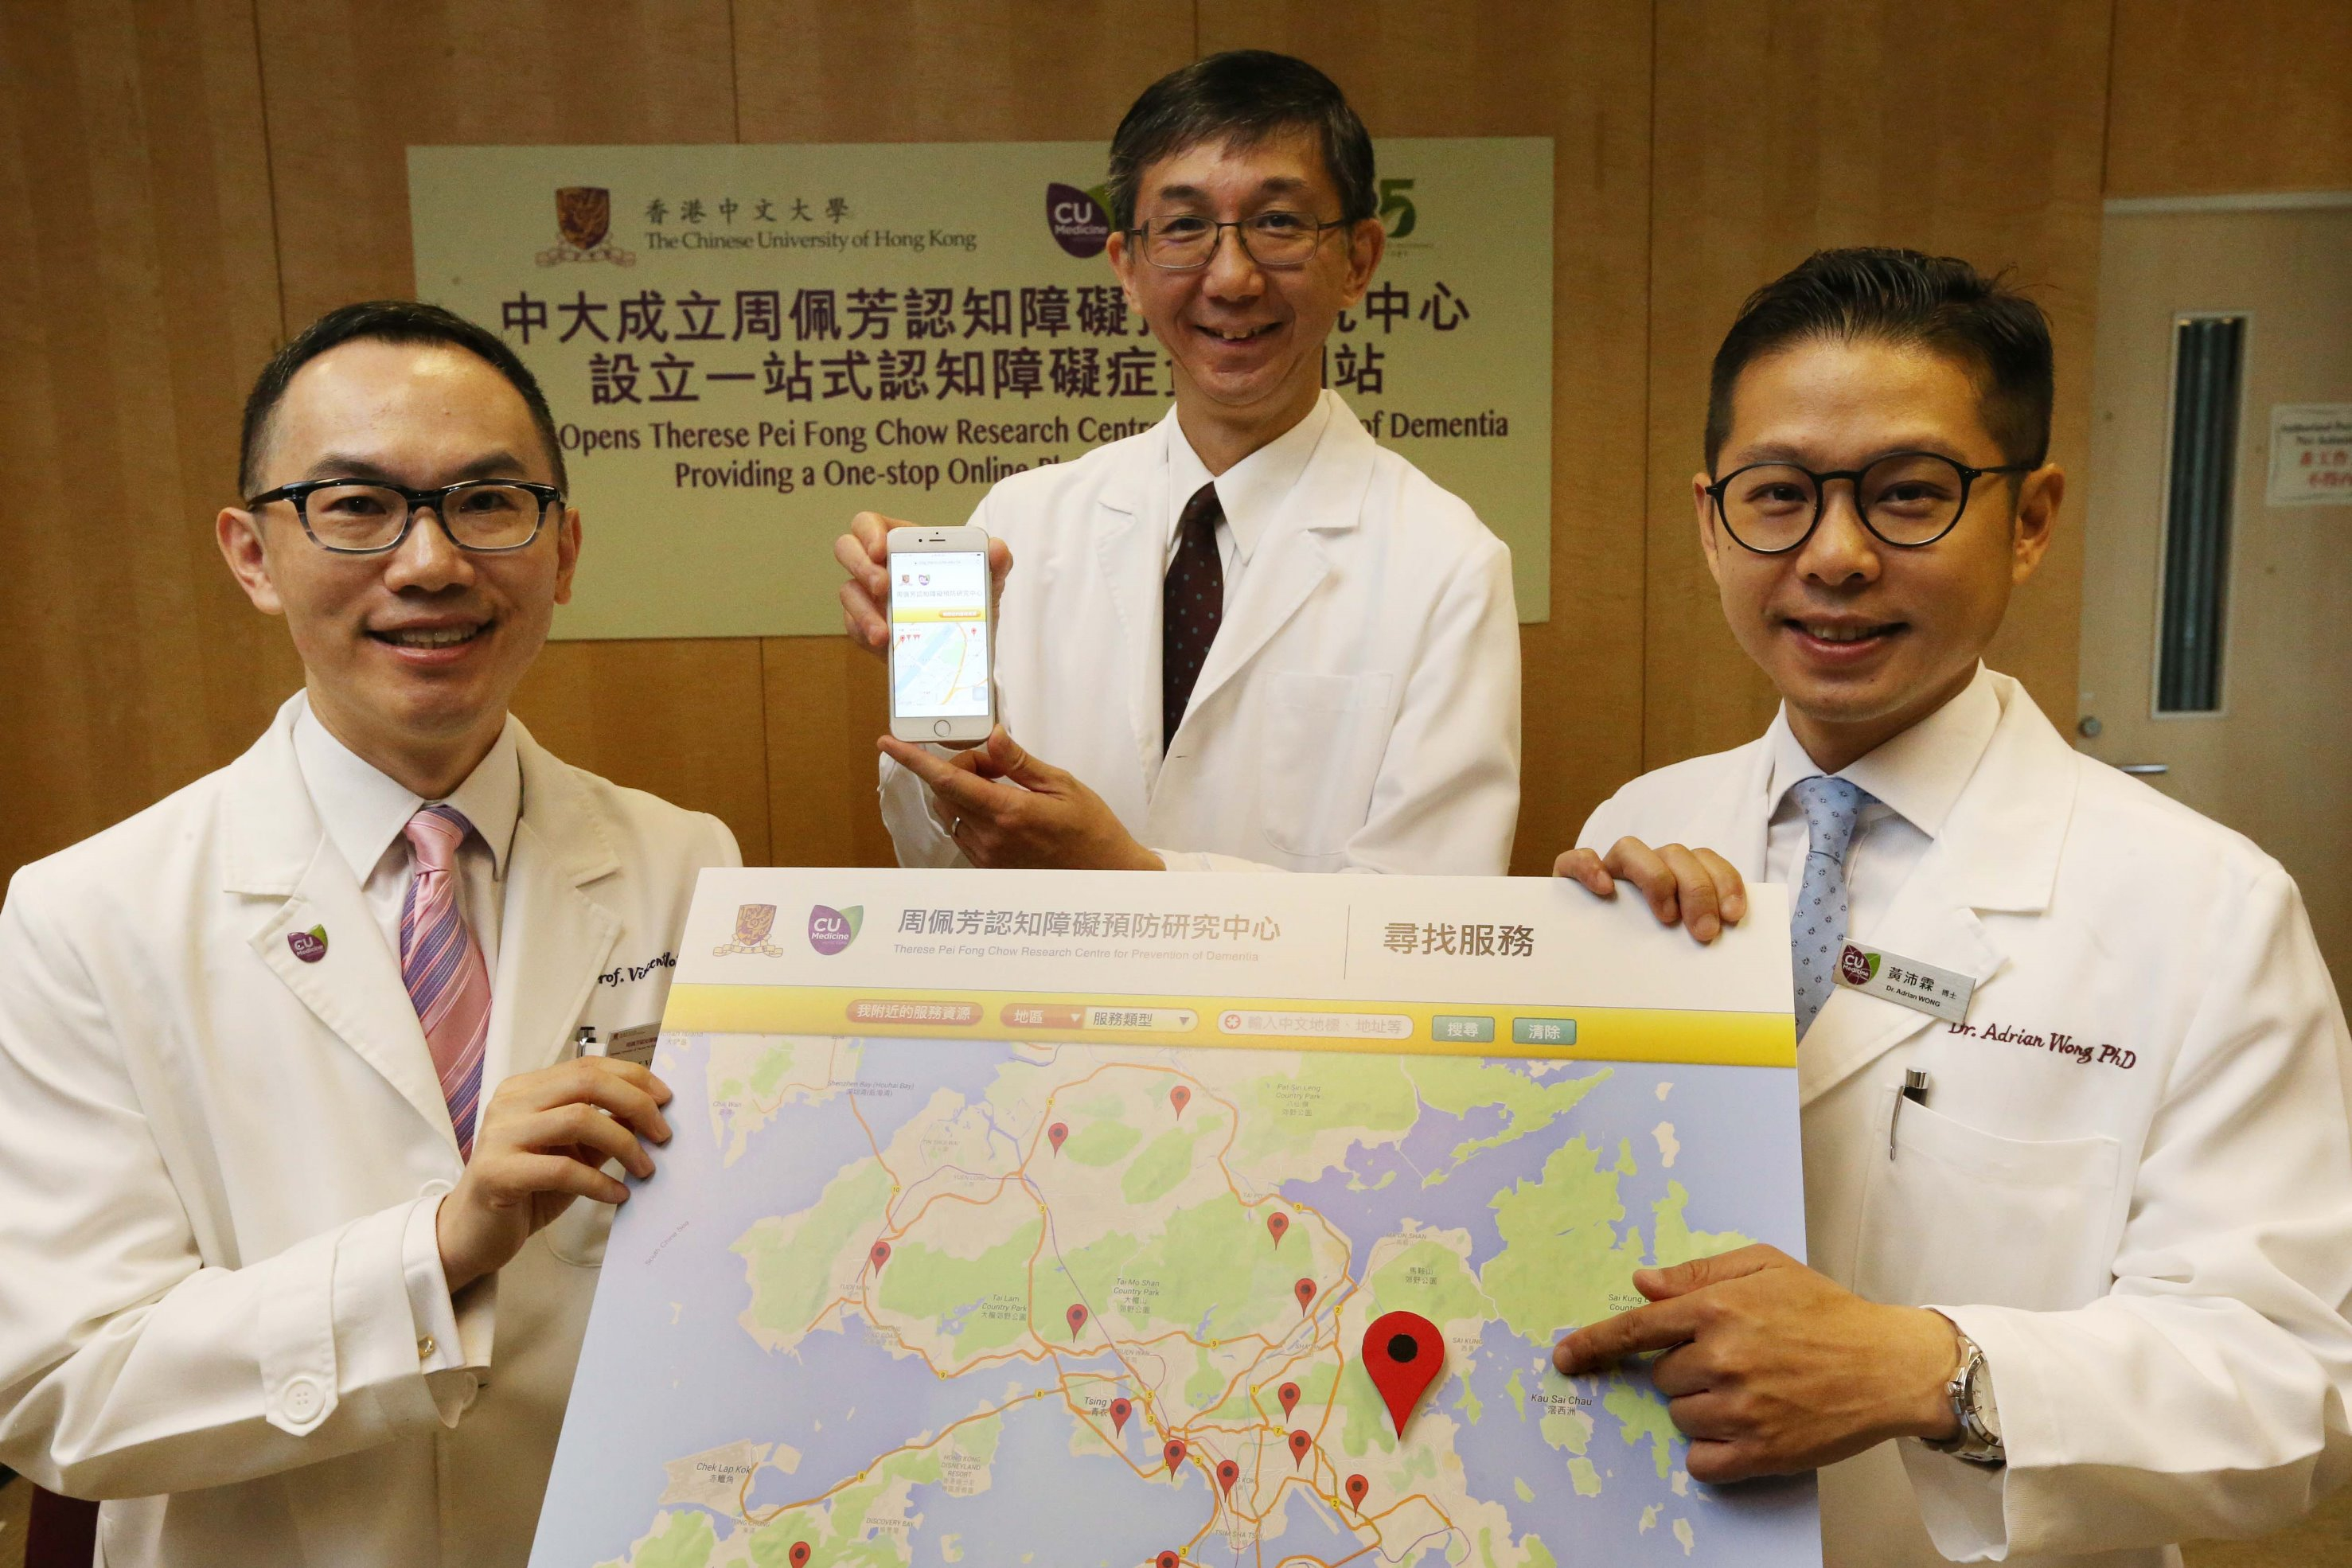 (From left) Prof. Vincent Chung Tong MOK, Division of Neurology, Department of Medicine and Therapeutics; Prof. Timothy Chi Yui KWOK, Division of Geriatrics, Department of Medicine and Therapeutics; and Dr. Adrian WONG, Research Assistant Professor, Division of Neurology, Department of Medicine and Therapeutics, CUHK Faculty of Medicine, demonstrate the service finding function of the Centre's one-stop online platform.